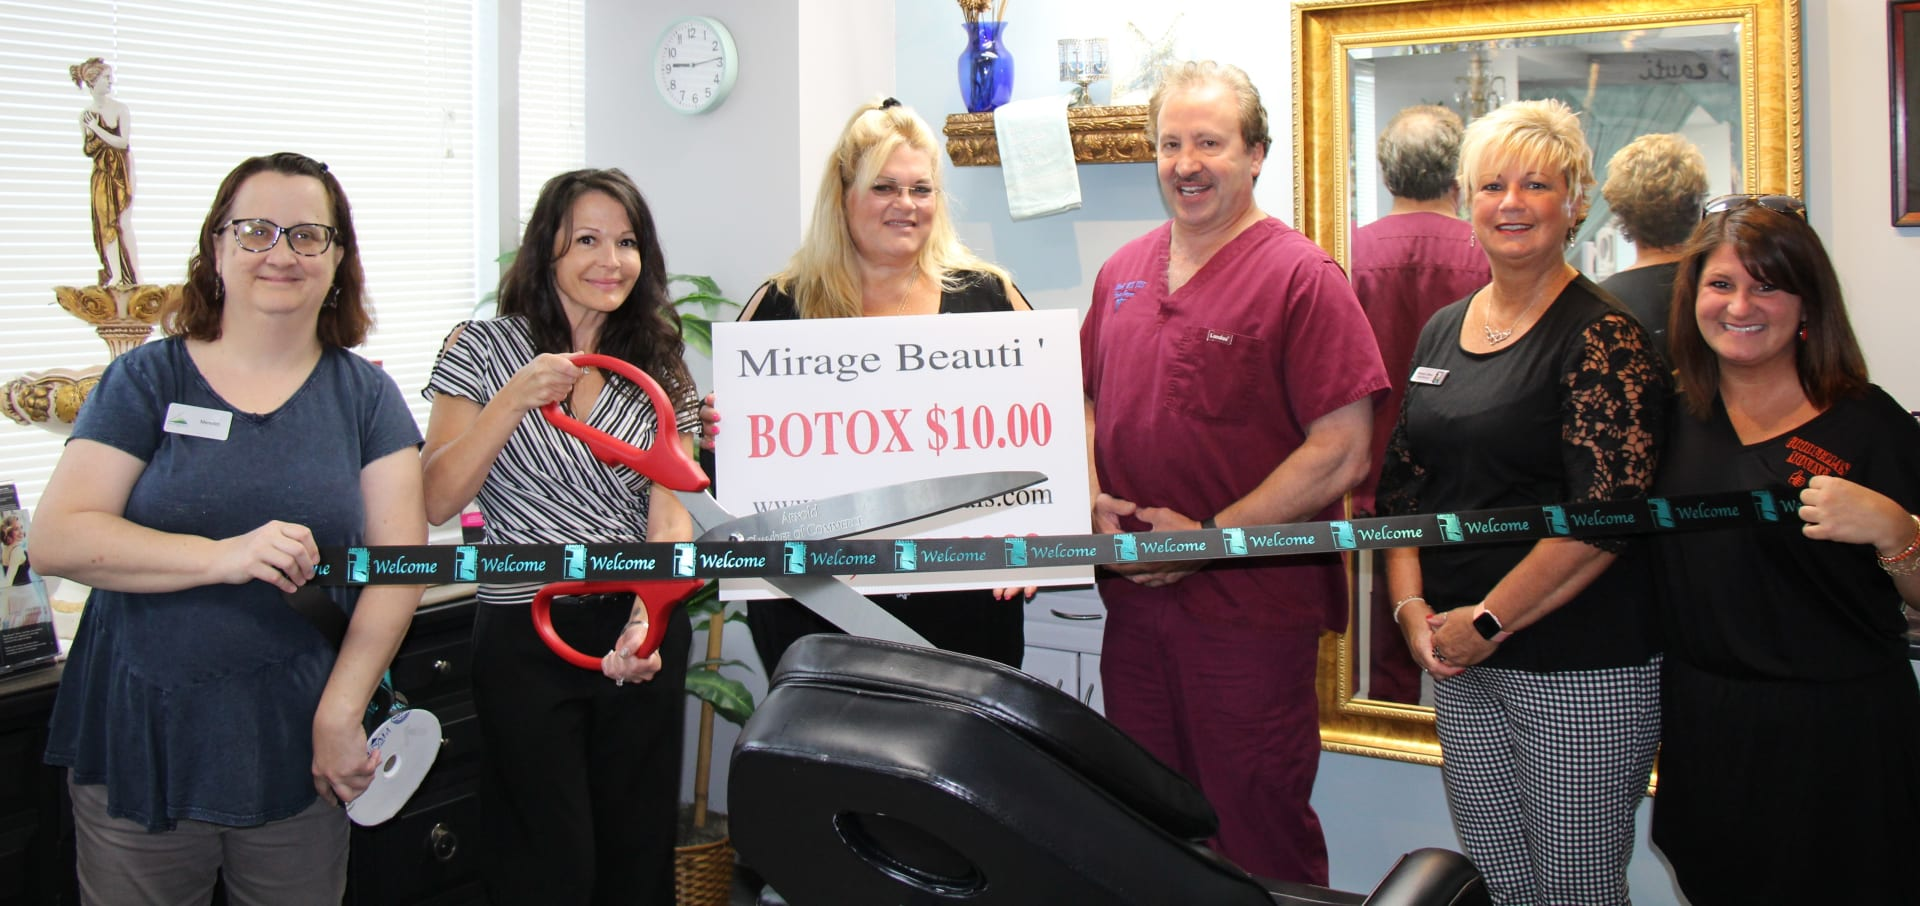 Ribbon-Cutting-MIrage-Beauti.JPG-w1920.jpg